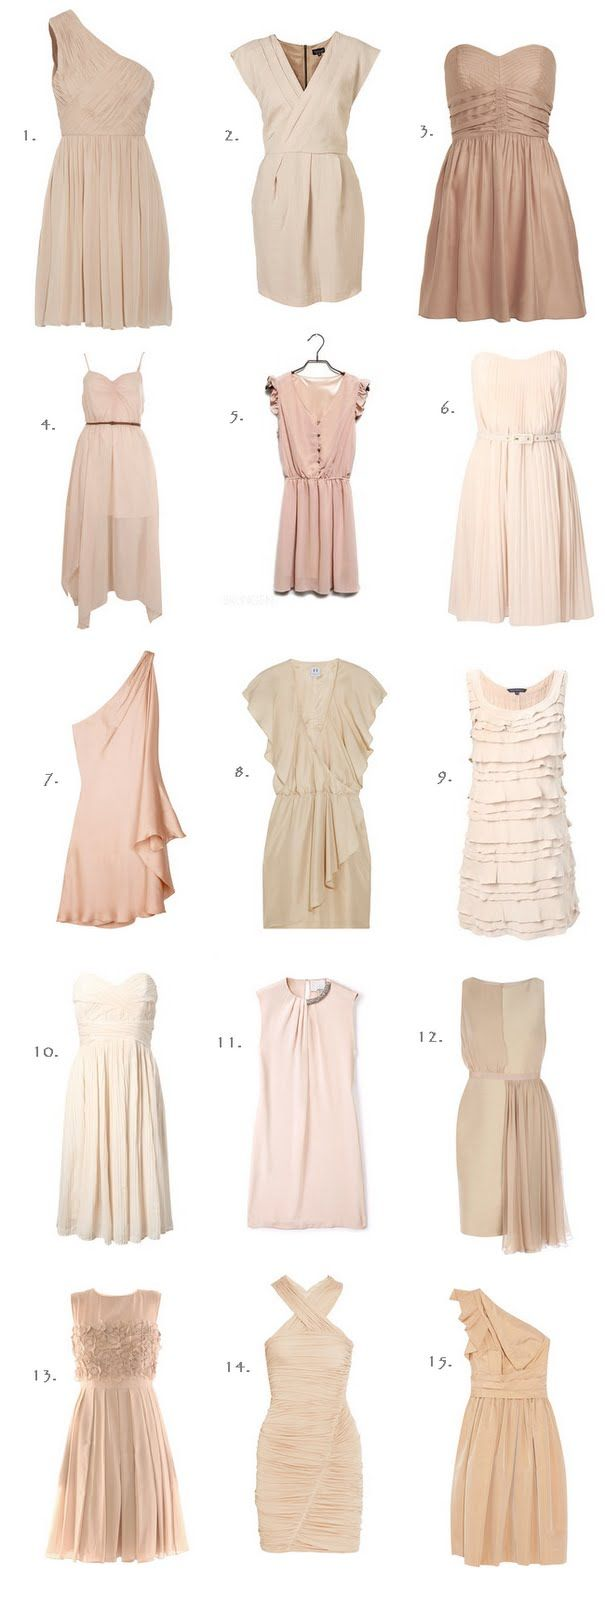 Blush & Neutral Tones